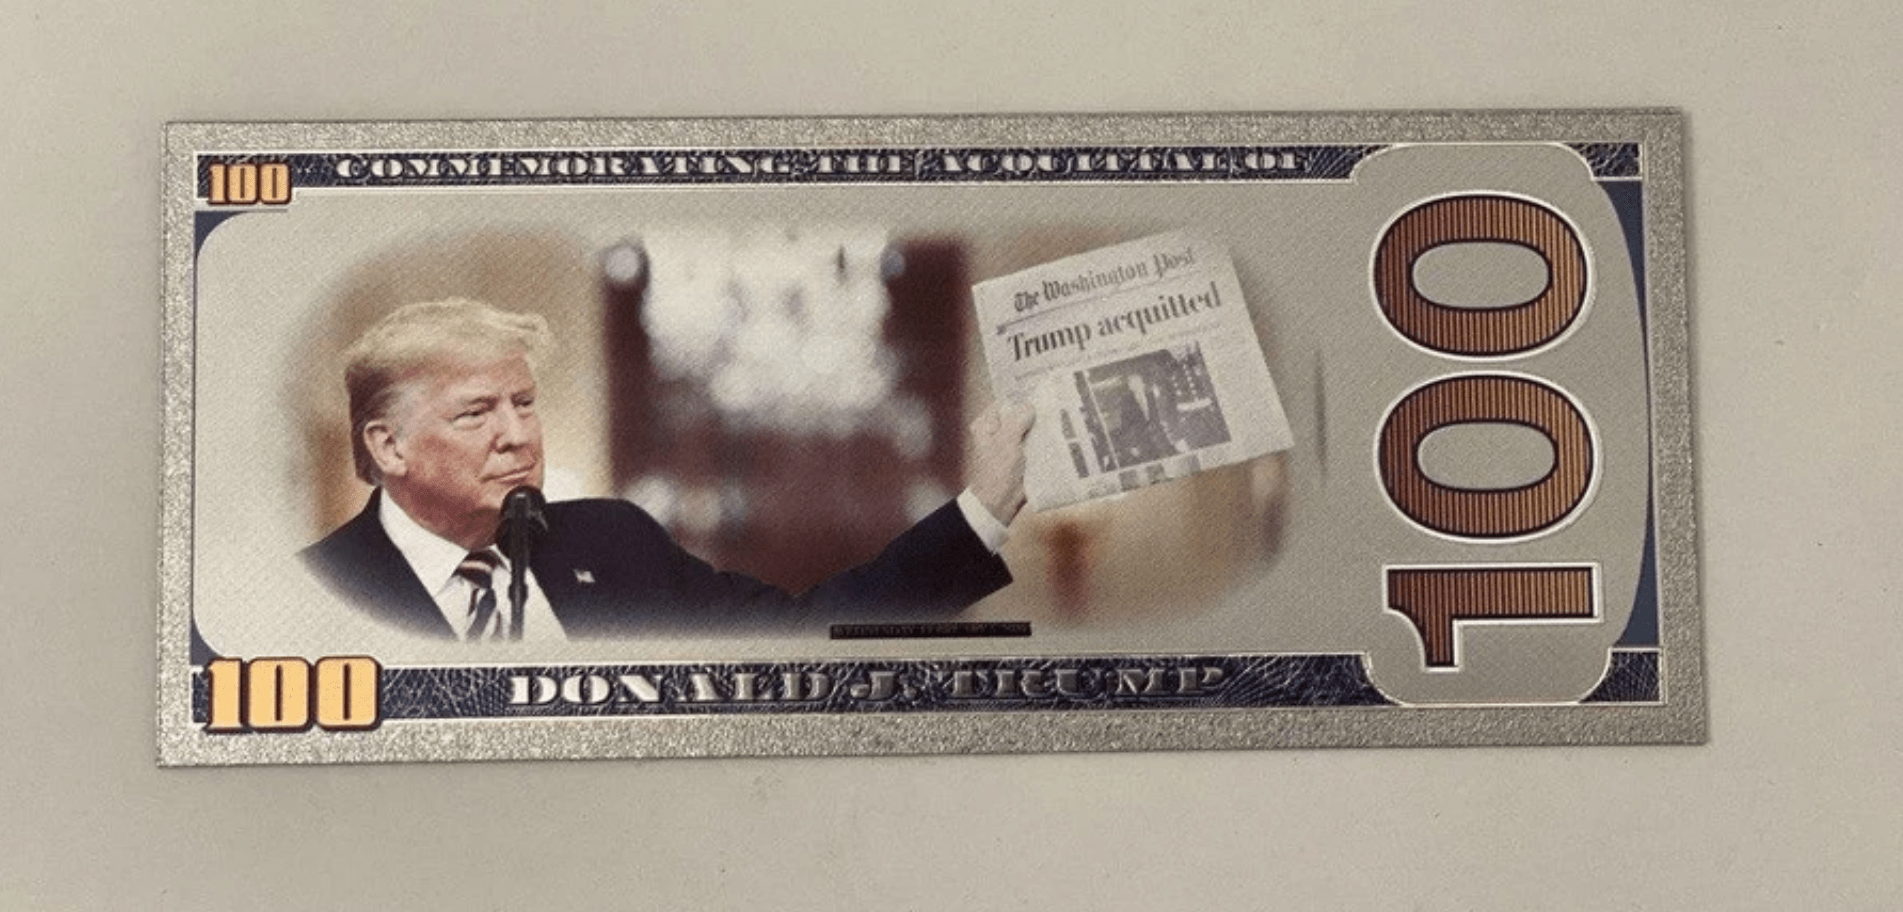 $100 Trump Acquittal SILVER Bill - My Home and Pet